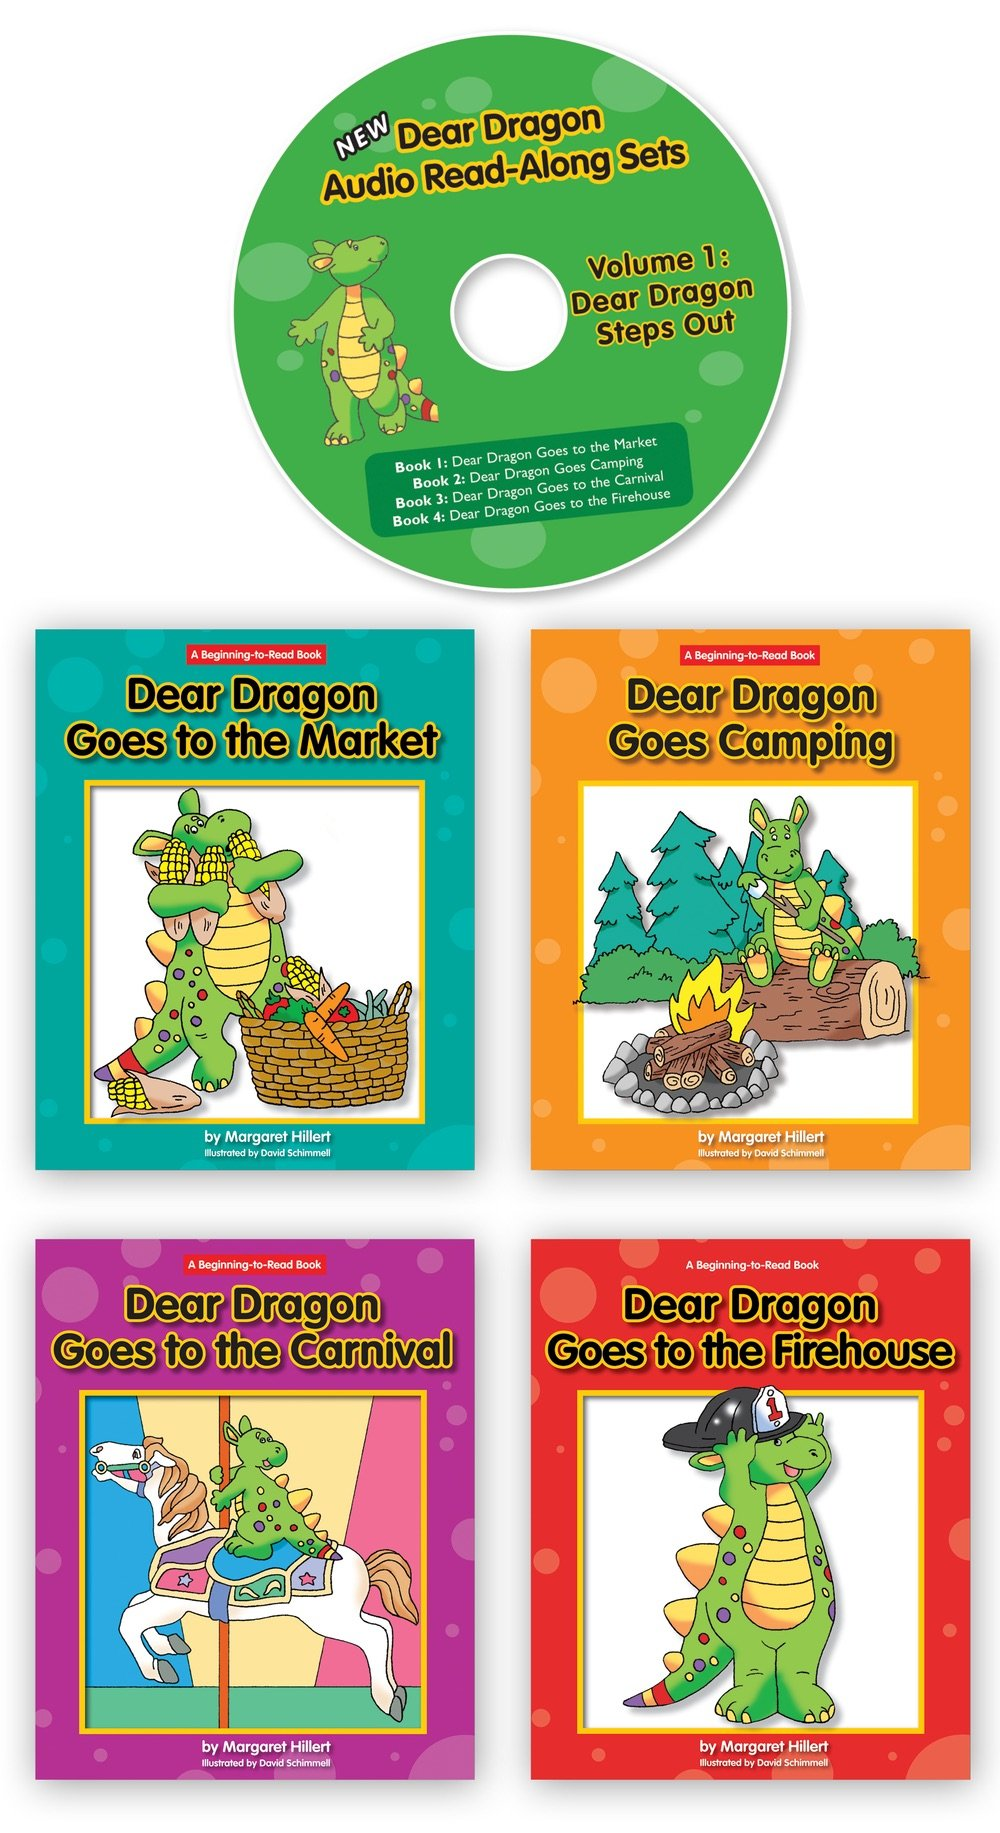 Dear Dragon Steps Out Volume 1 CD and Hardcover Books (Go Reader Read Along Sets) ebook